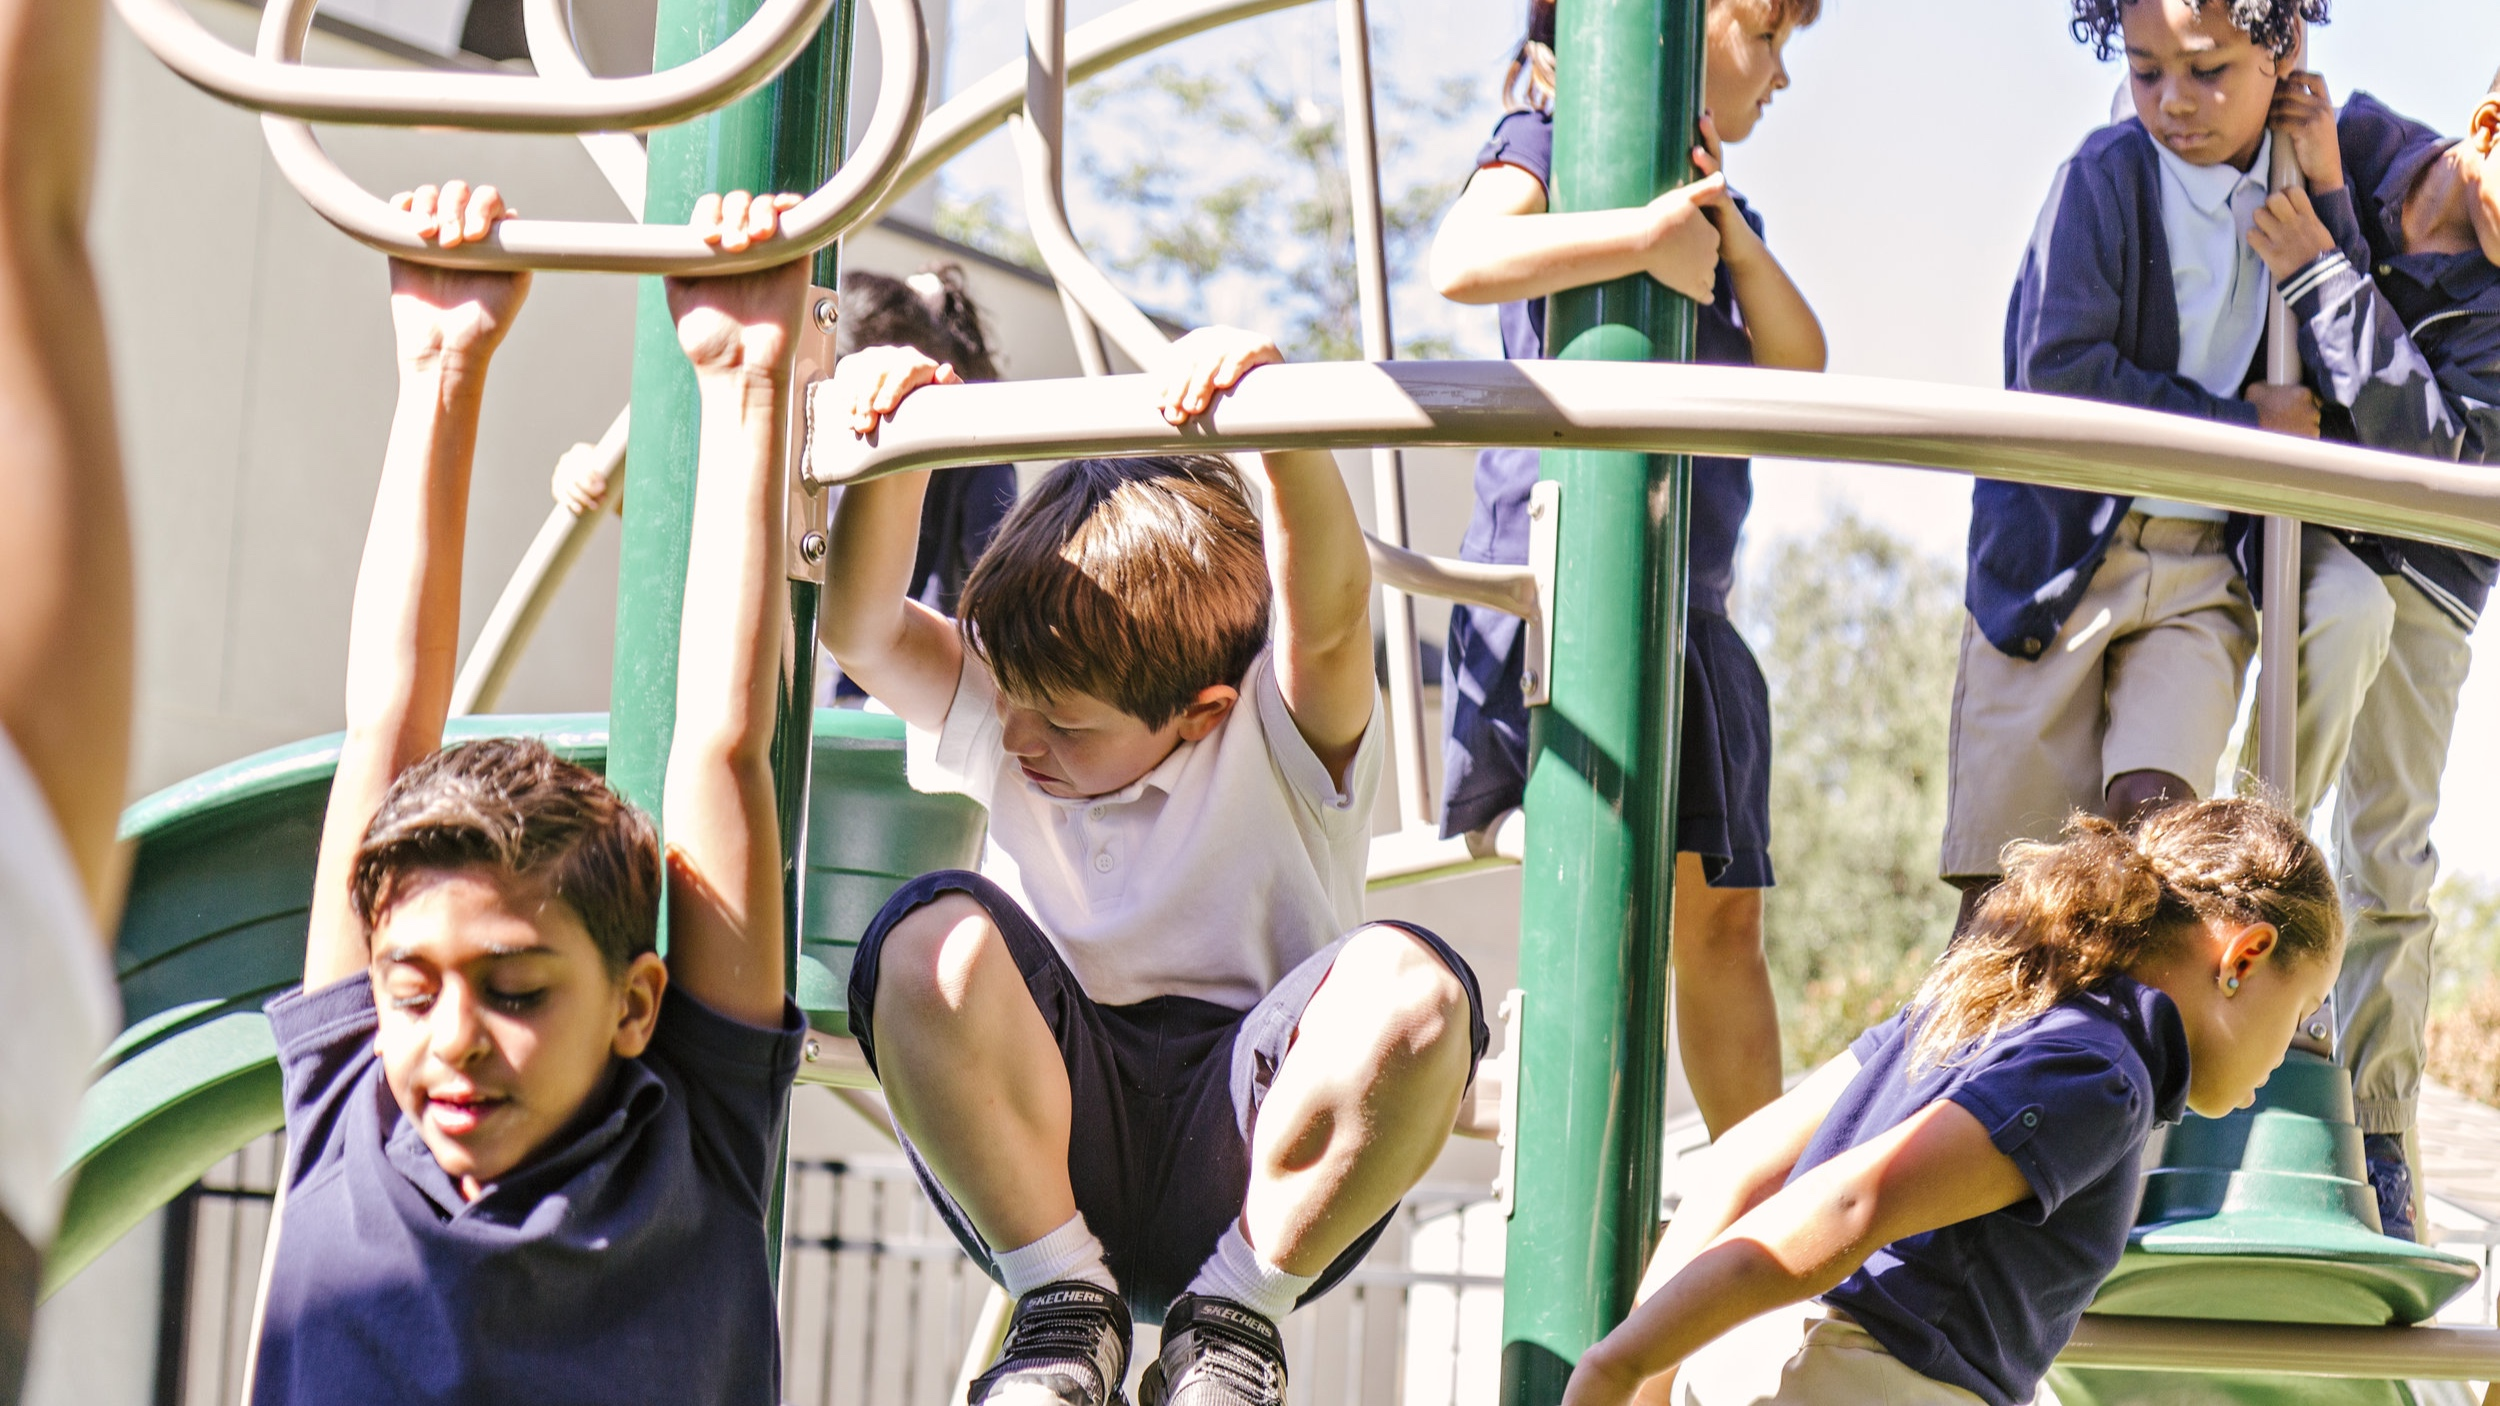 Physical Education - We have a weekly physical education class because we know the importance of keeping students fit at an early age.